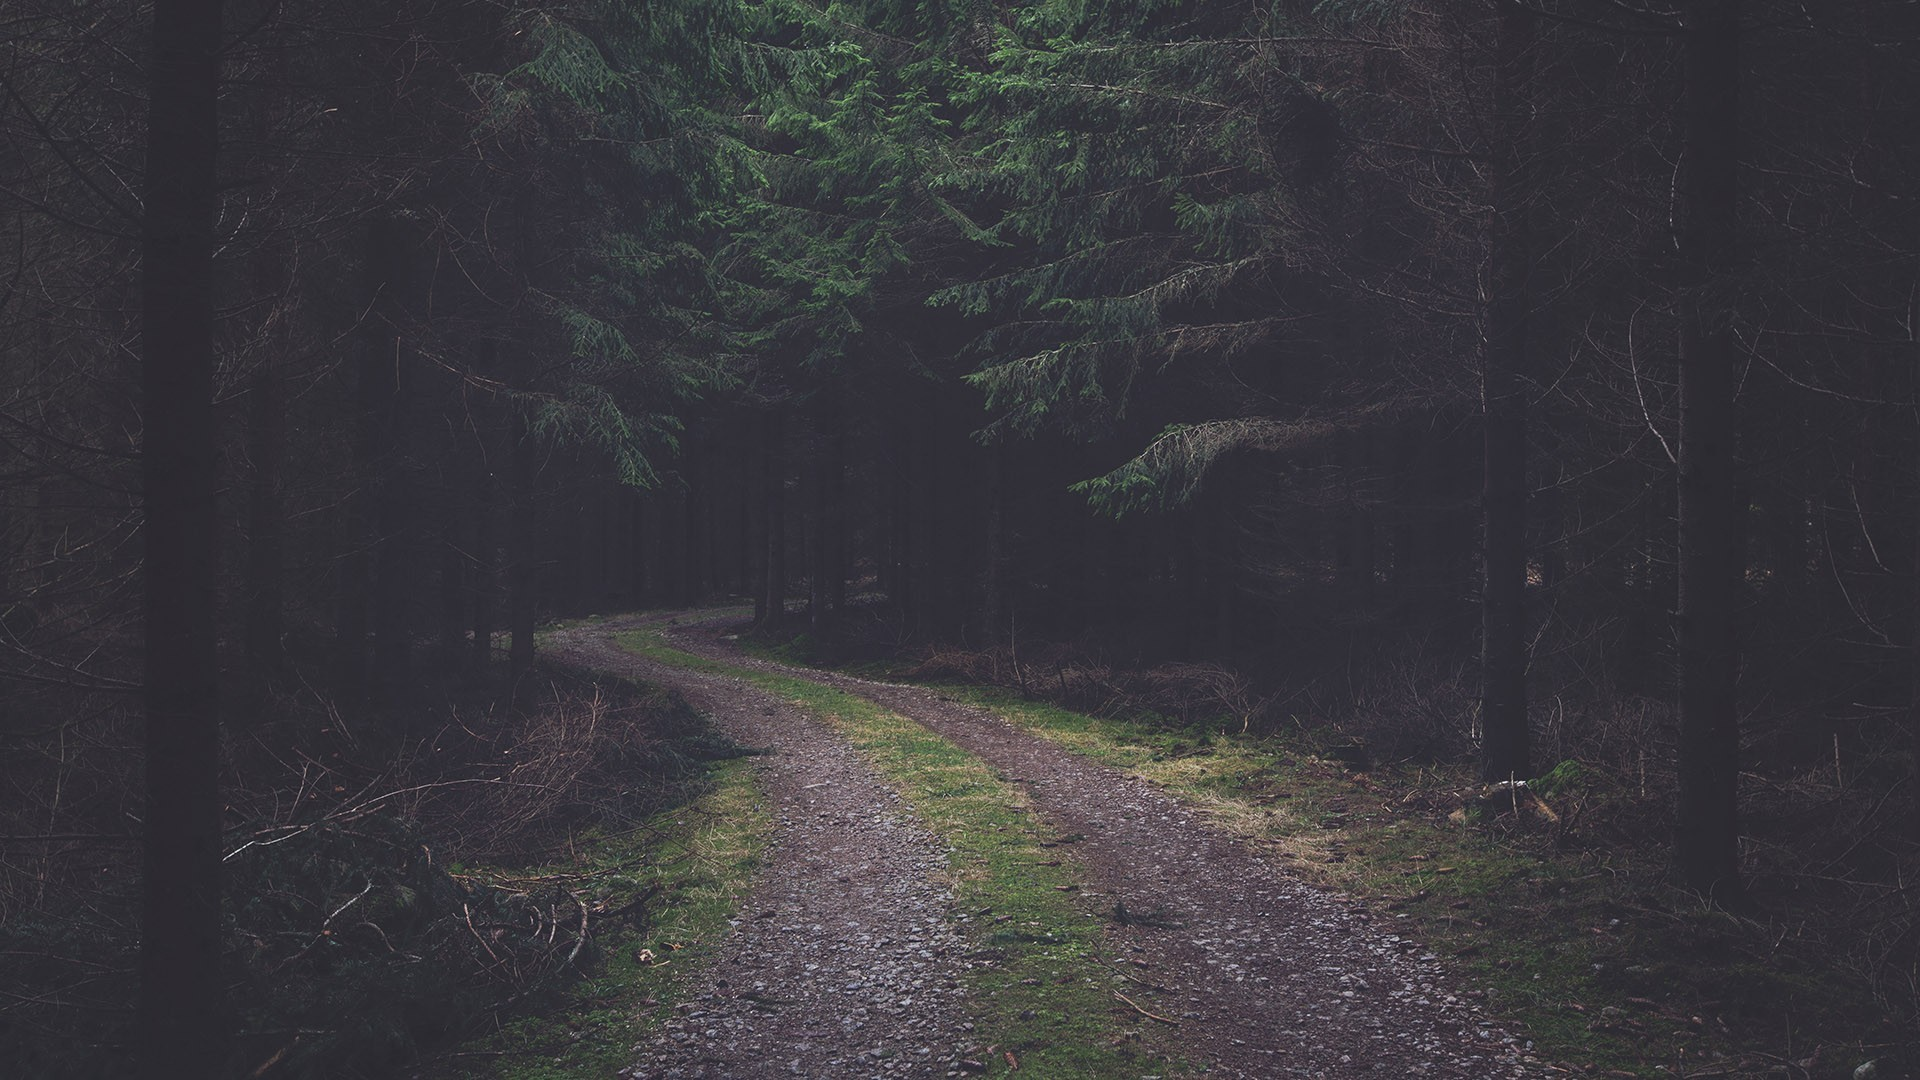 forest, Dirt road, Pine trees, Faded, Pine cones Wallpapers HD / Desktop  and Mobile Backgrounds